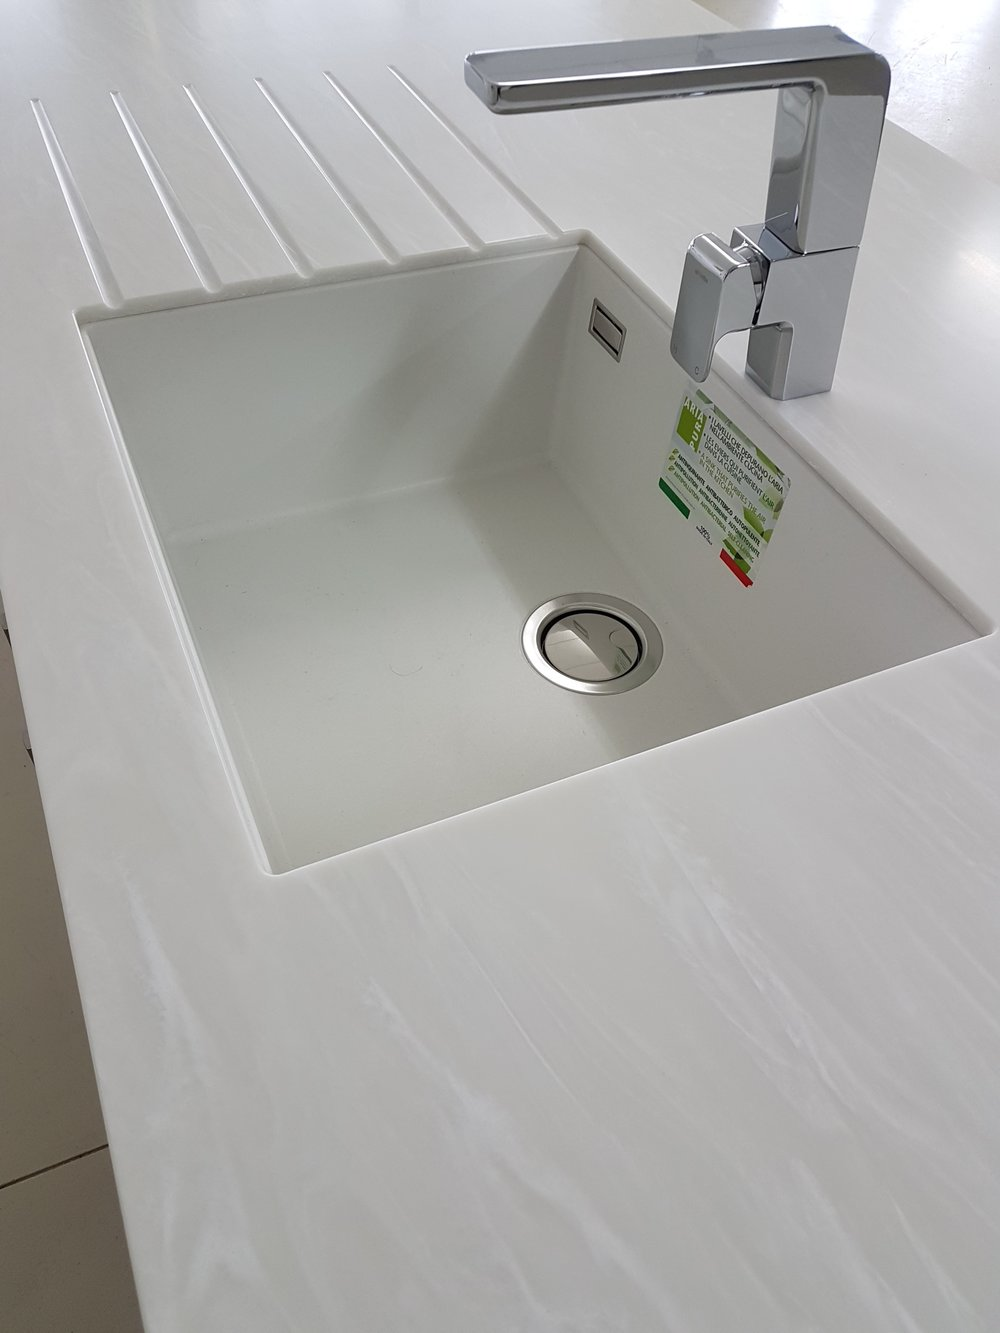 TriStone Milk Grotto benchtop with drainer grooves and undermounted white composite sink.